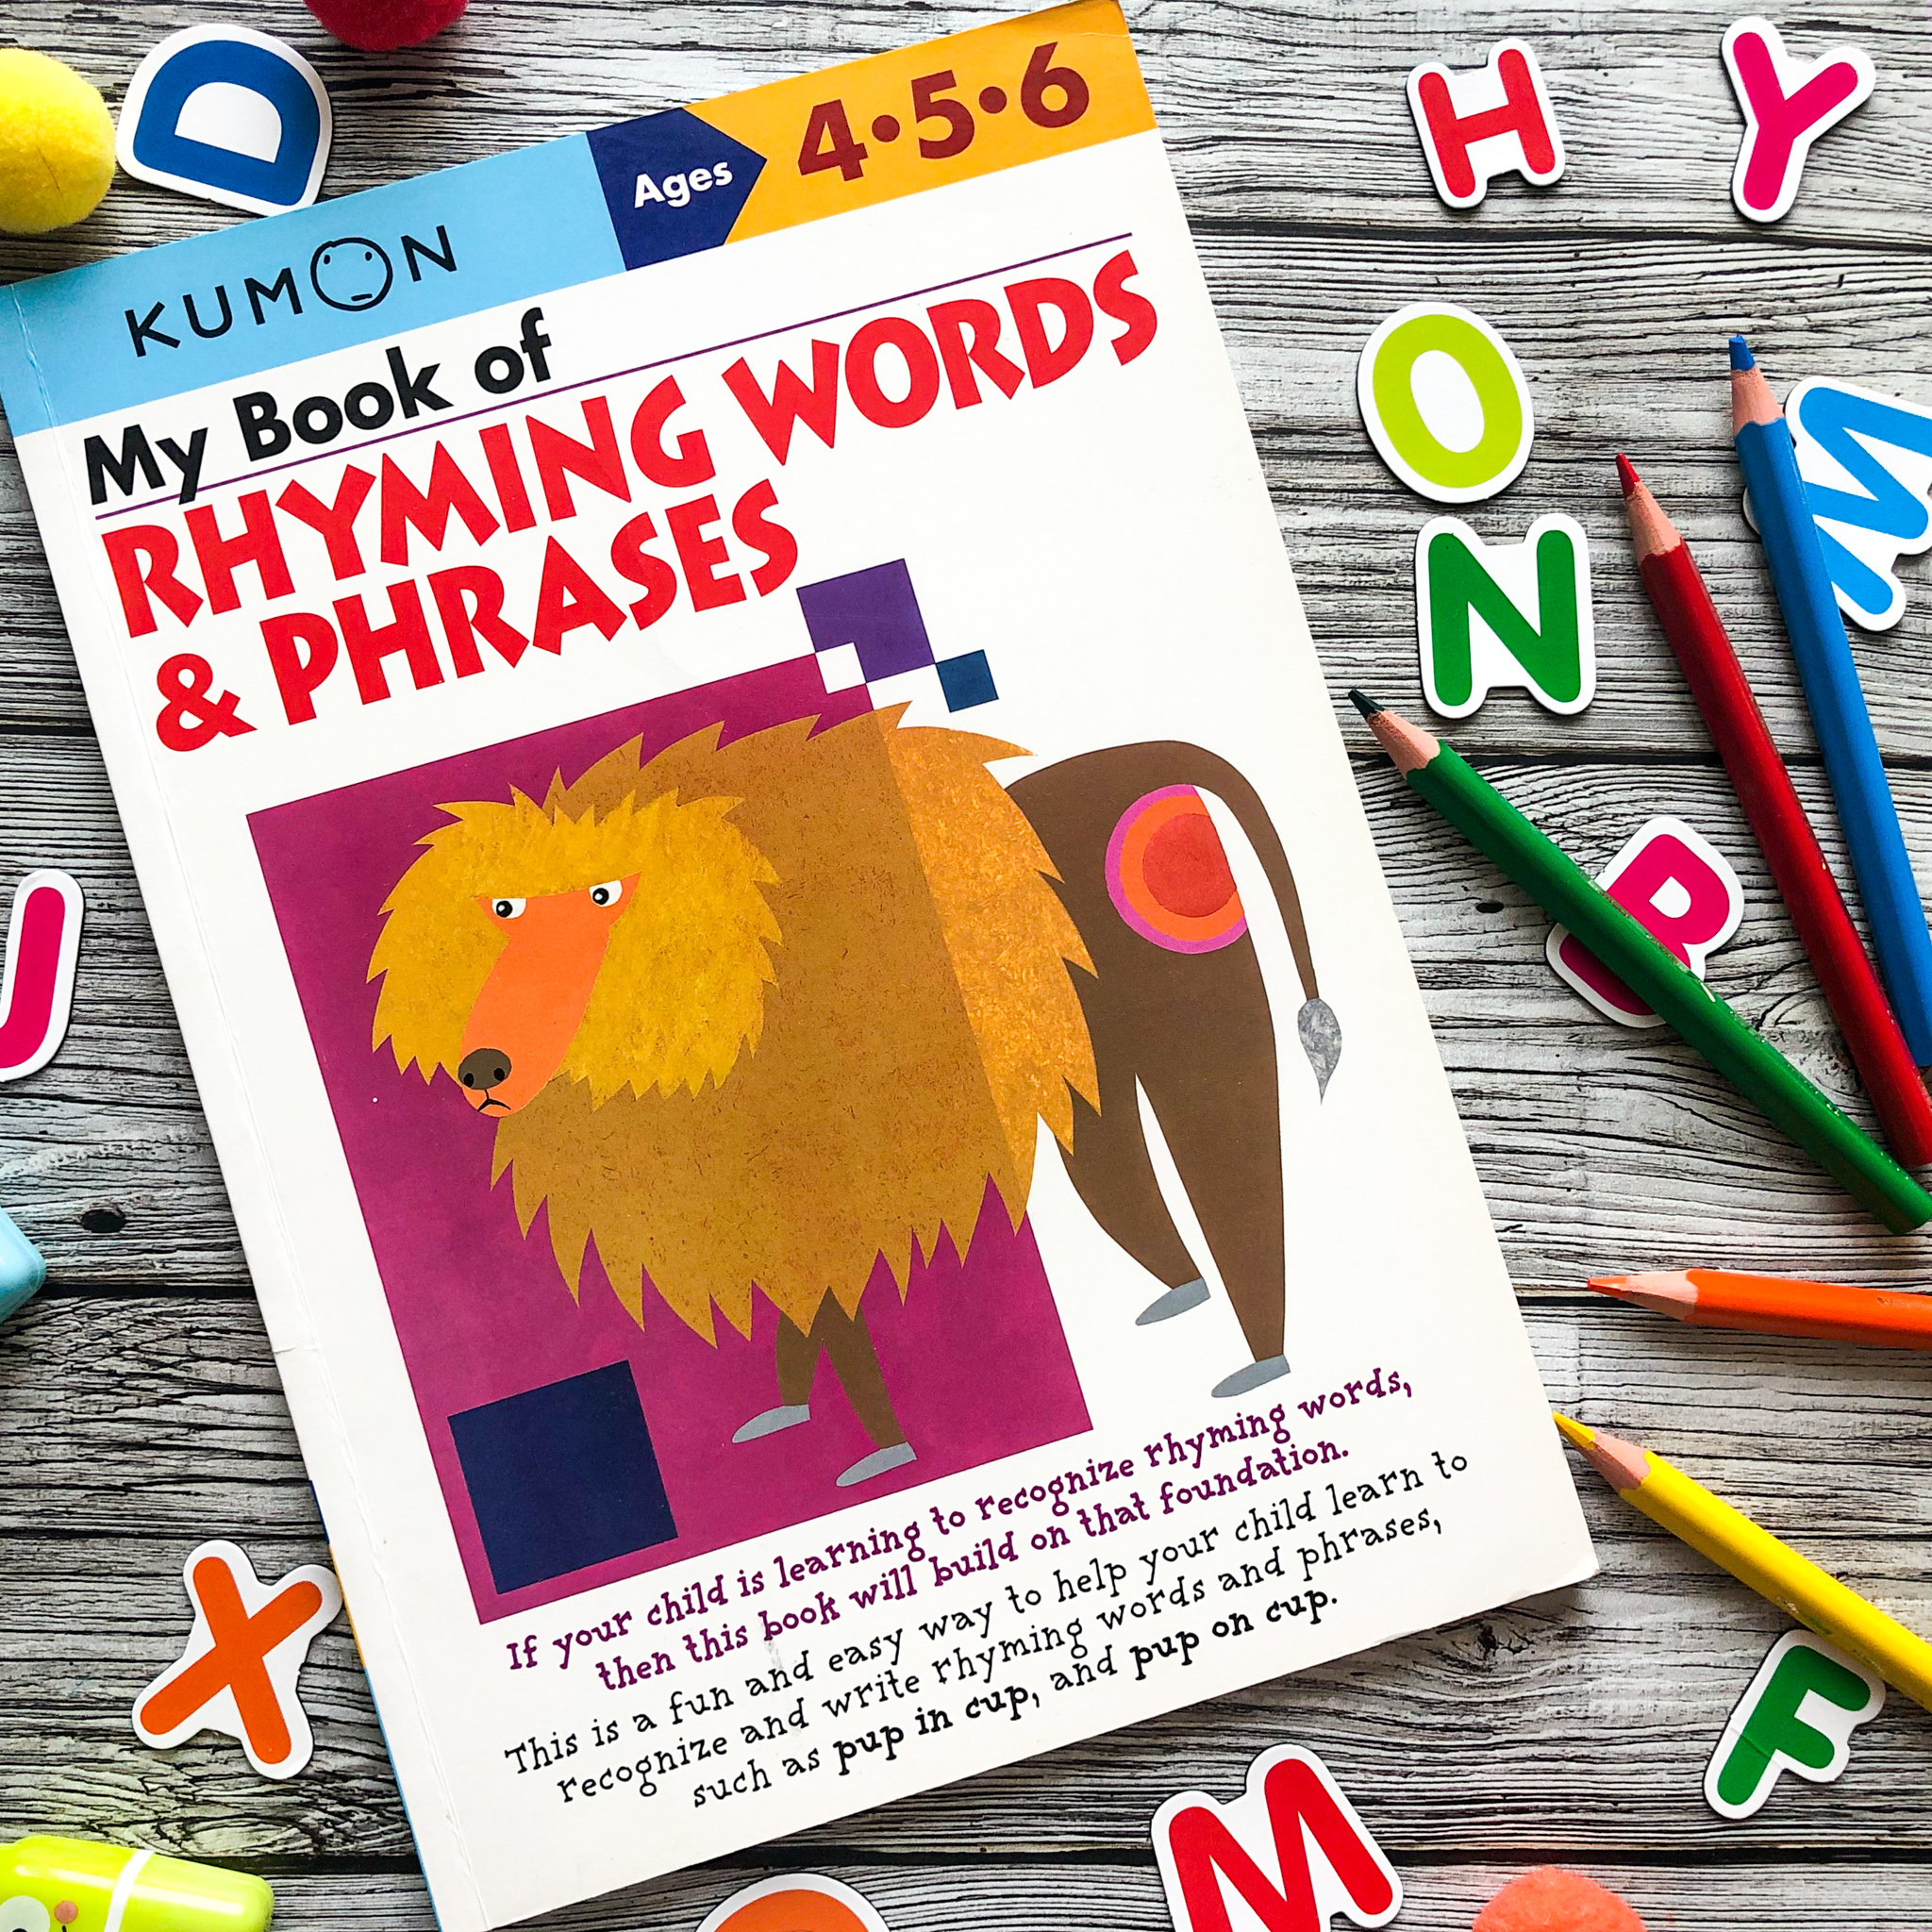 My Book Of Rhyming Words & Phrases, 4-6